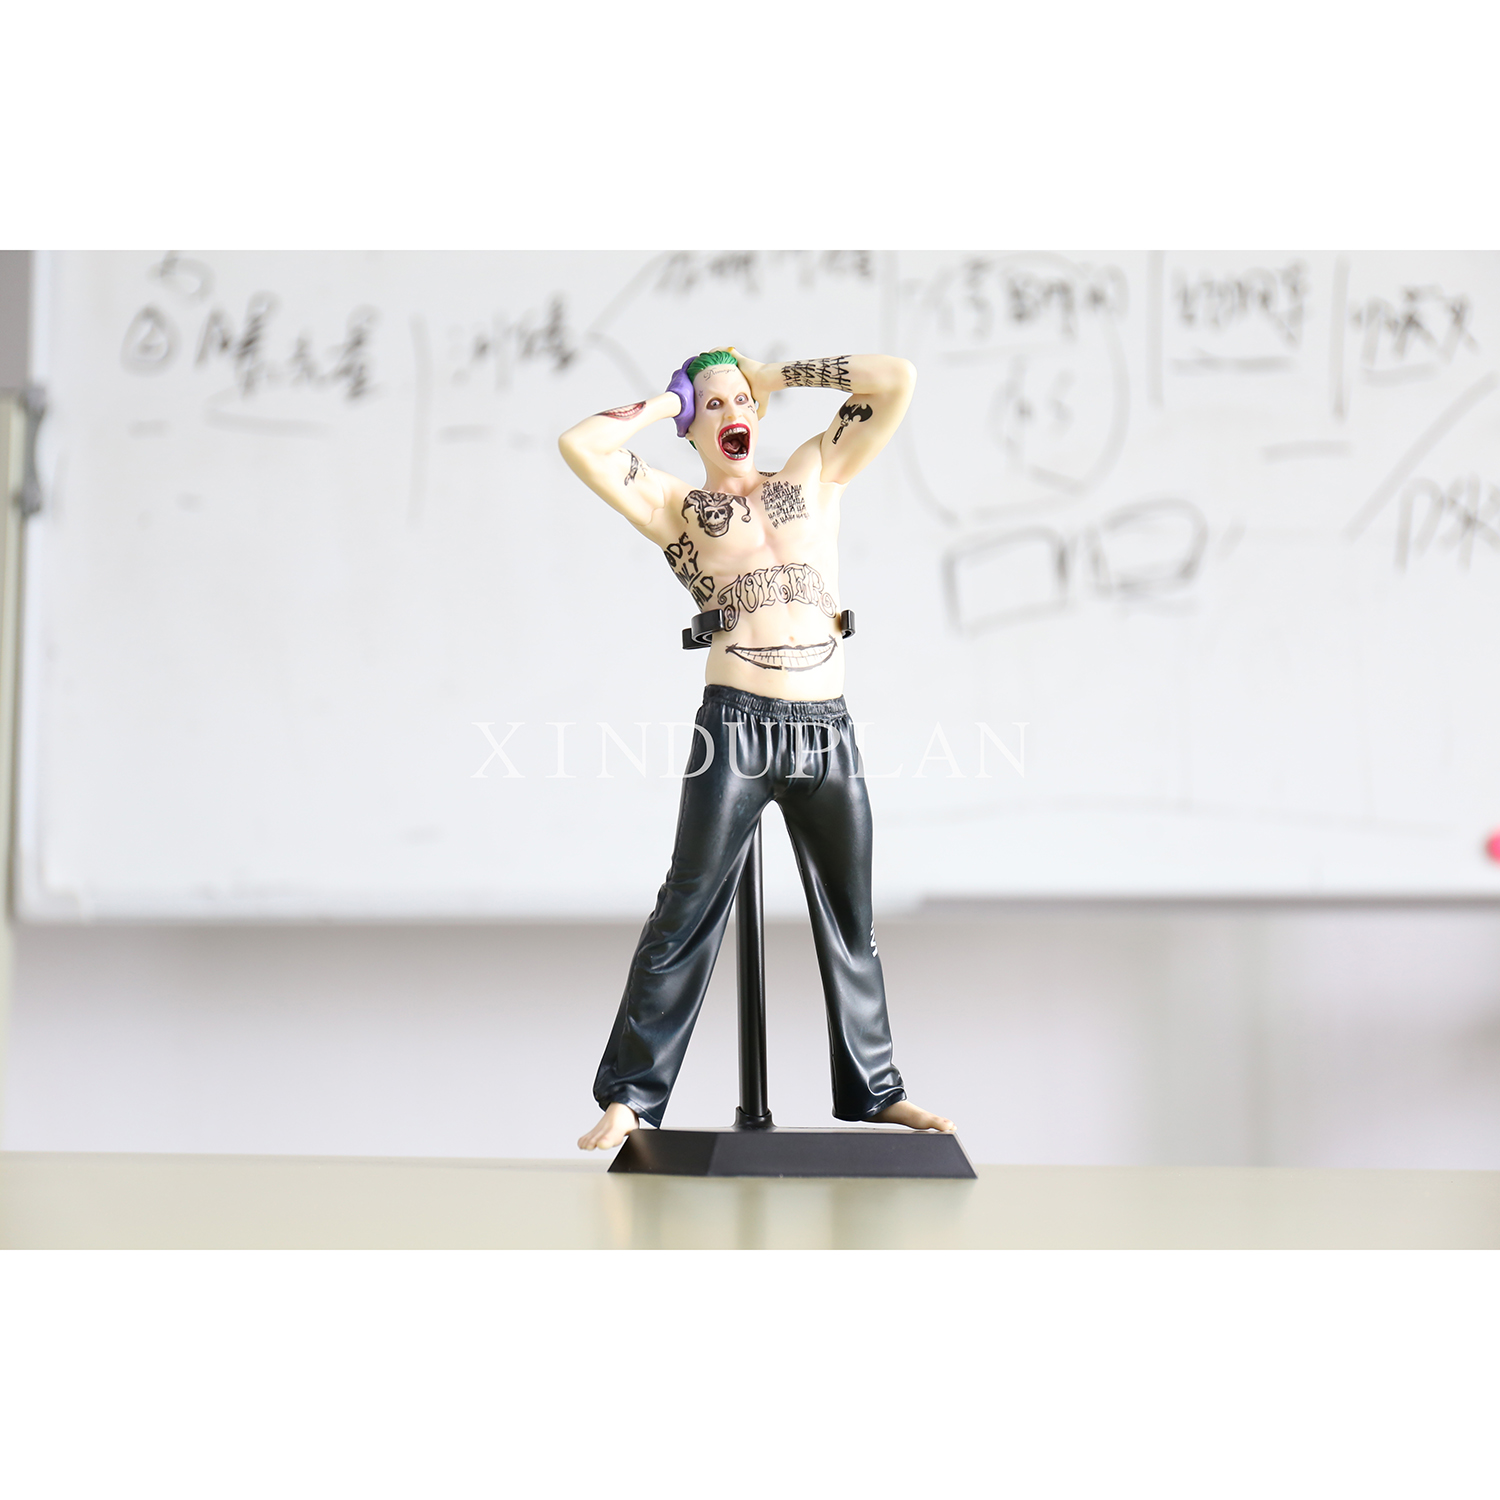 XINDUPLAN DC Comics Justice League Movie Joker Crazy Toys Batman Movable Action Figure Toys 30cm Kids Collection Model 0788 xinduplan dc comics play arts kai justice league batman reloading dawn justice action figure toys 25cm collection model 0637